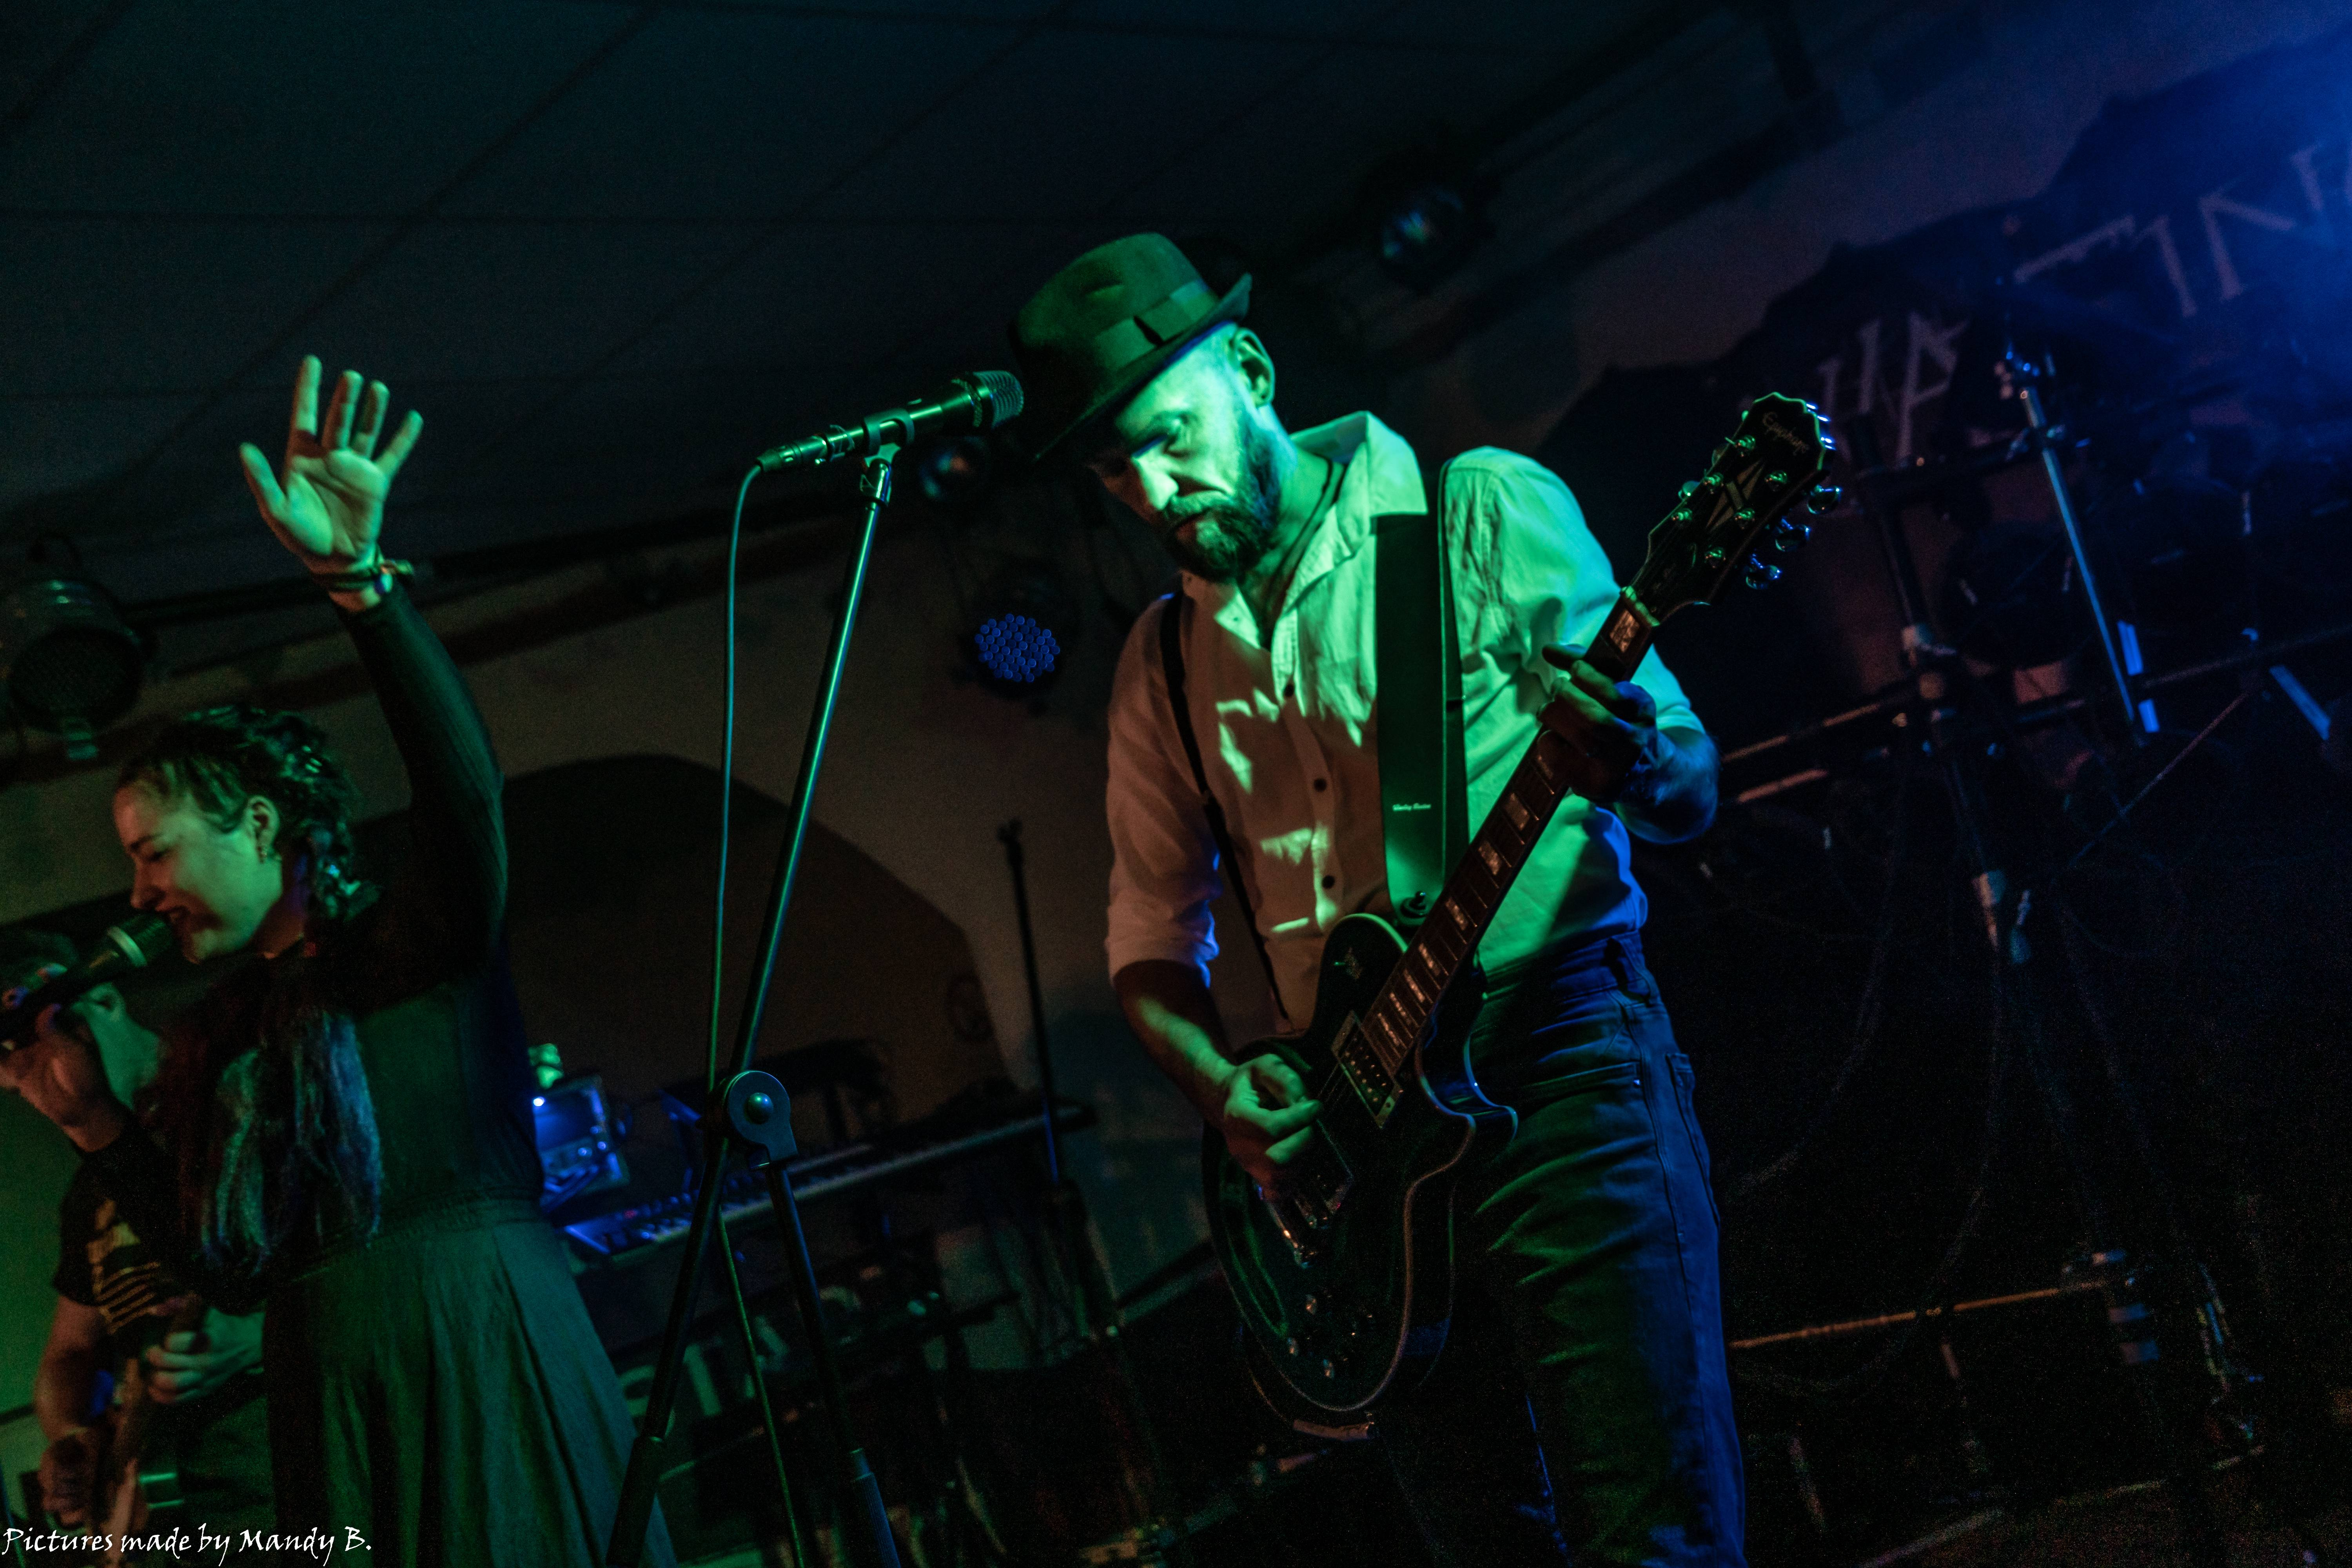 San Dra and Sebo of Waiting in Vain at Club Eule in Dresden on 20 September 2019